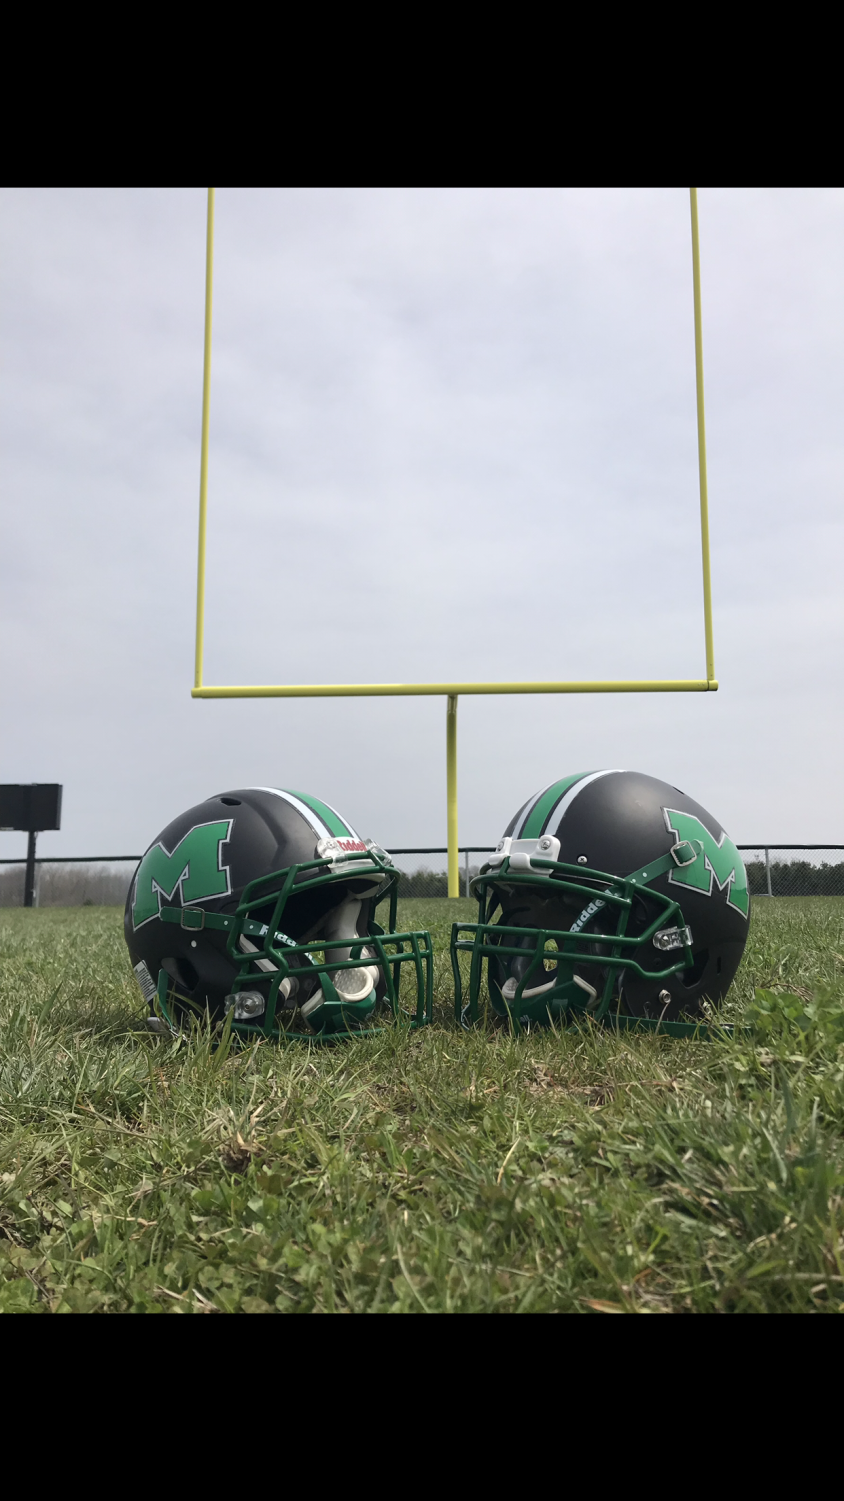 With the upcoming season, the Meridian Hawks football team will take on a new look. The helmets have been repainted and also new jerseys have been ordered. Garrett Meisenhelter said,